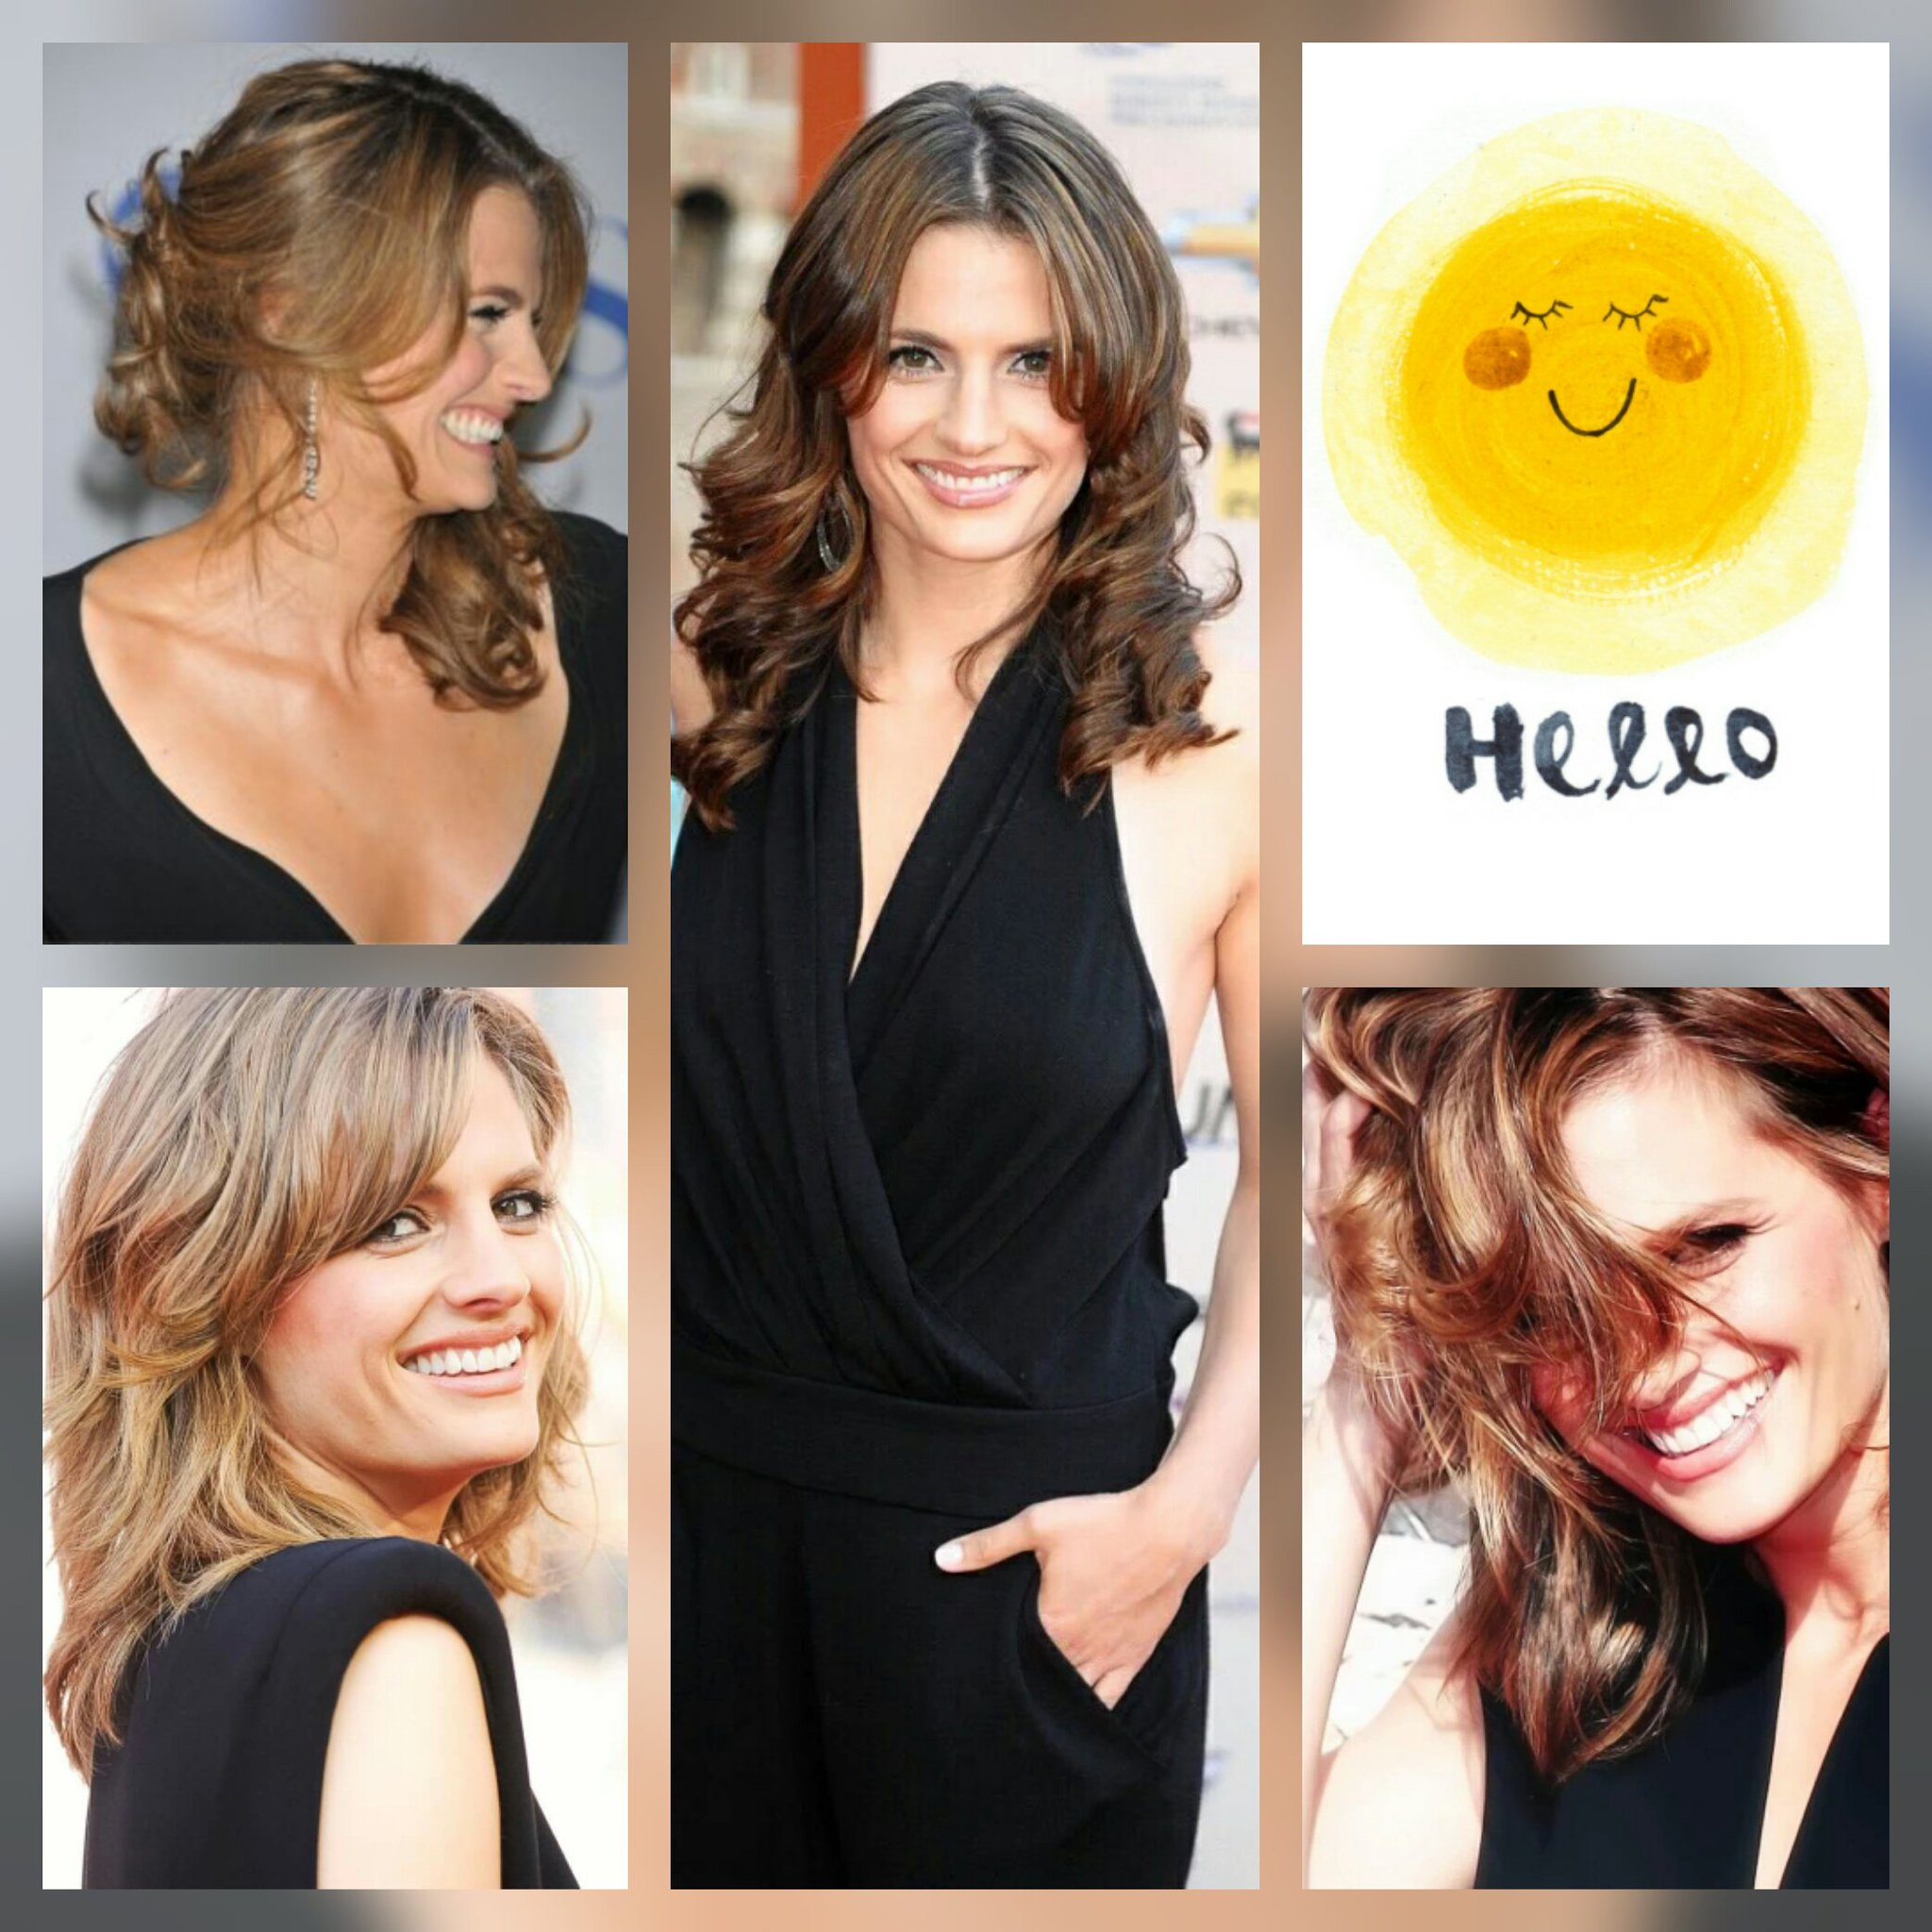 Hi Minna,good wednesday to you too and to all.😘 @MononenMinna @Stana_Katic @tais_menezes_ @Drawing_Dragon @jalberg8 @nlopes952 @lacrevette85 https://t.co/sZOvbT2Y5c